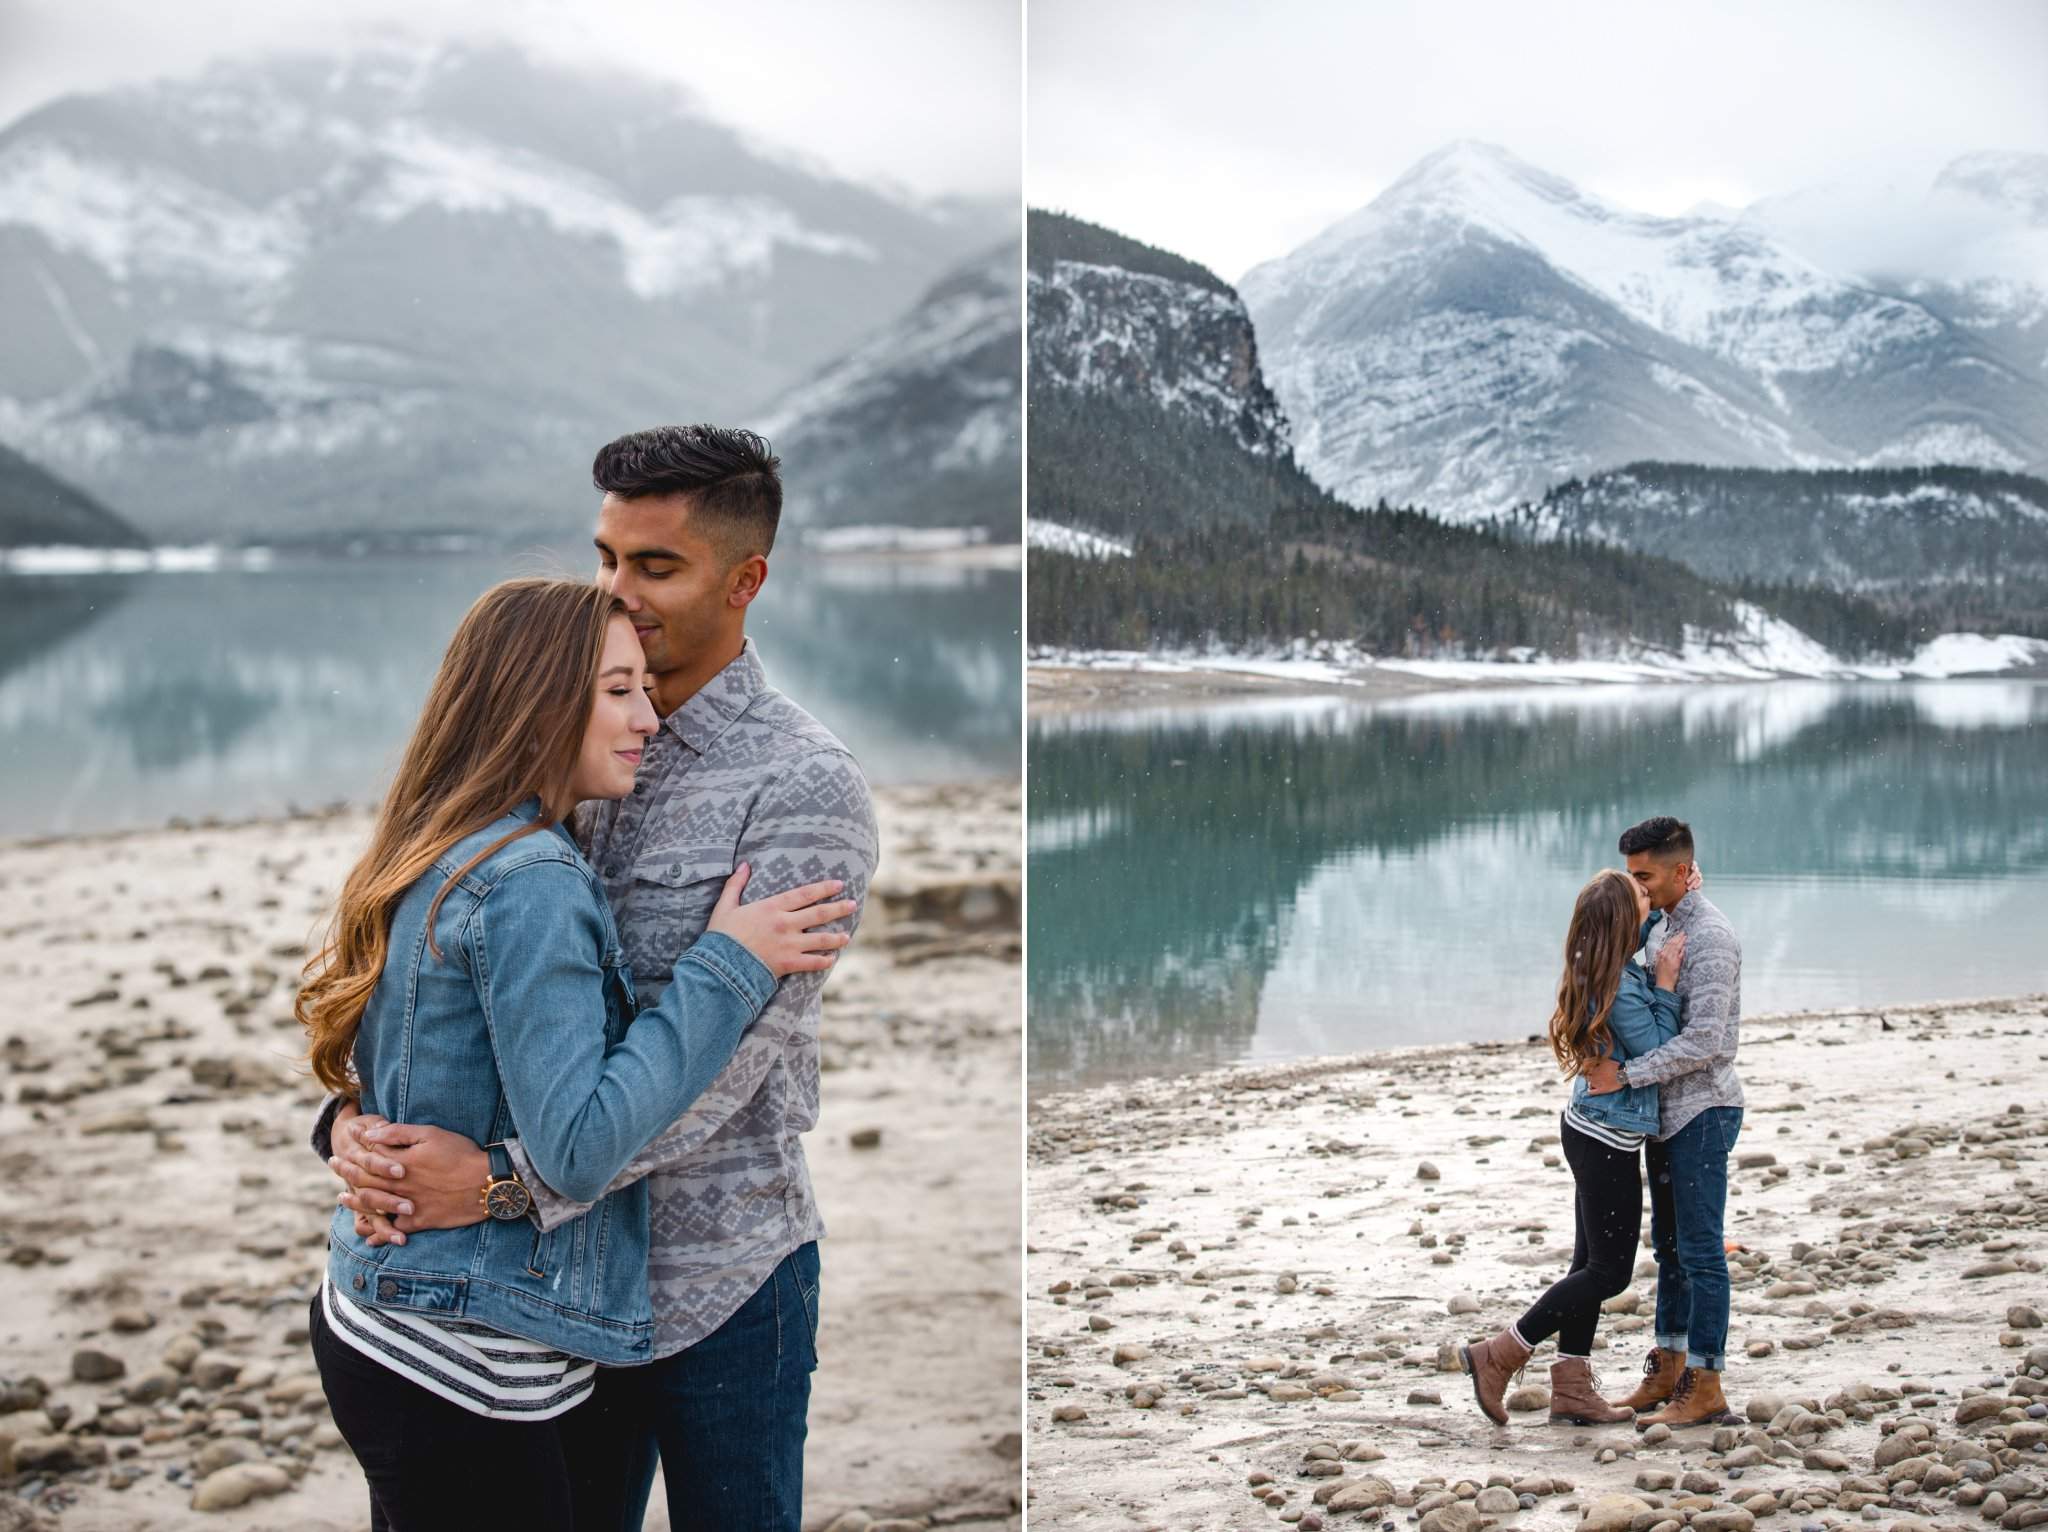 Ashley Daphne Photography,Banff engagement photographer,Banff wedding photographer,Barrier Lake,Calgary Alberta Photographer,Calgary engagement photographer,Calgary wedding photographer,Canmore engagement photographer,Canmore wedding photographer,Kananaskis photographer,Kananaskis wedding photographer,Rocky Mountain wedding,calgary couple photographer,calgary family photographer,lake,mountain couple photos,mountains,rocky mountains,snowfall,travel alberta,winter,winter engagement photos,